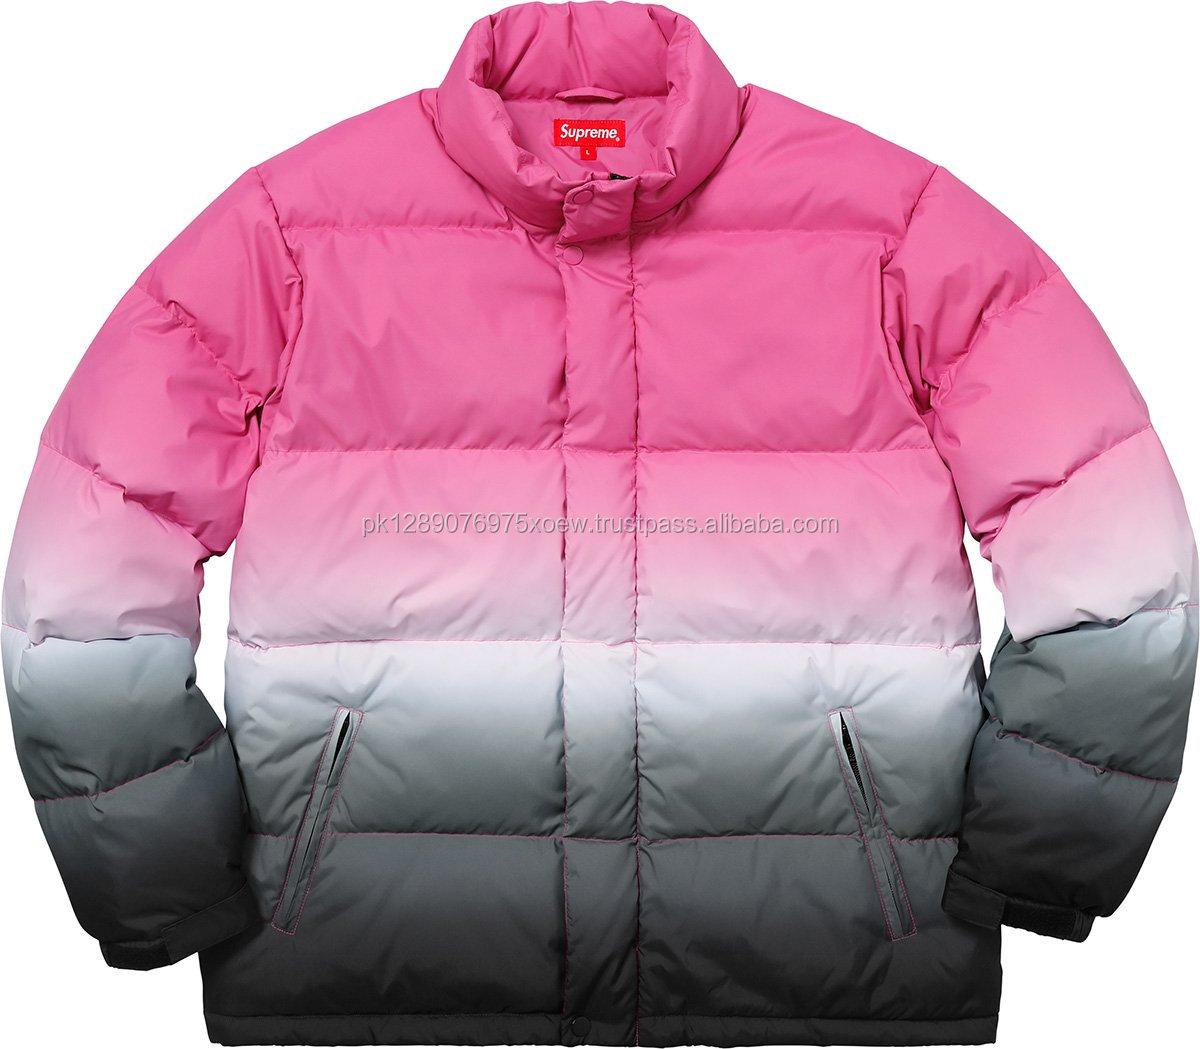 Latest Design New look Nylon Puffy Jacket Men, Wholesale Lining Nylon Customized Puffy Jacket